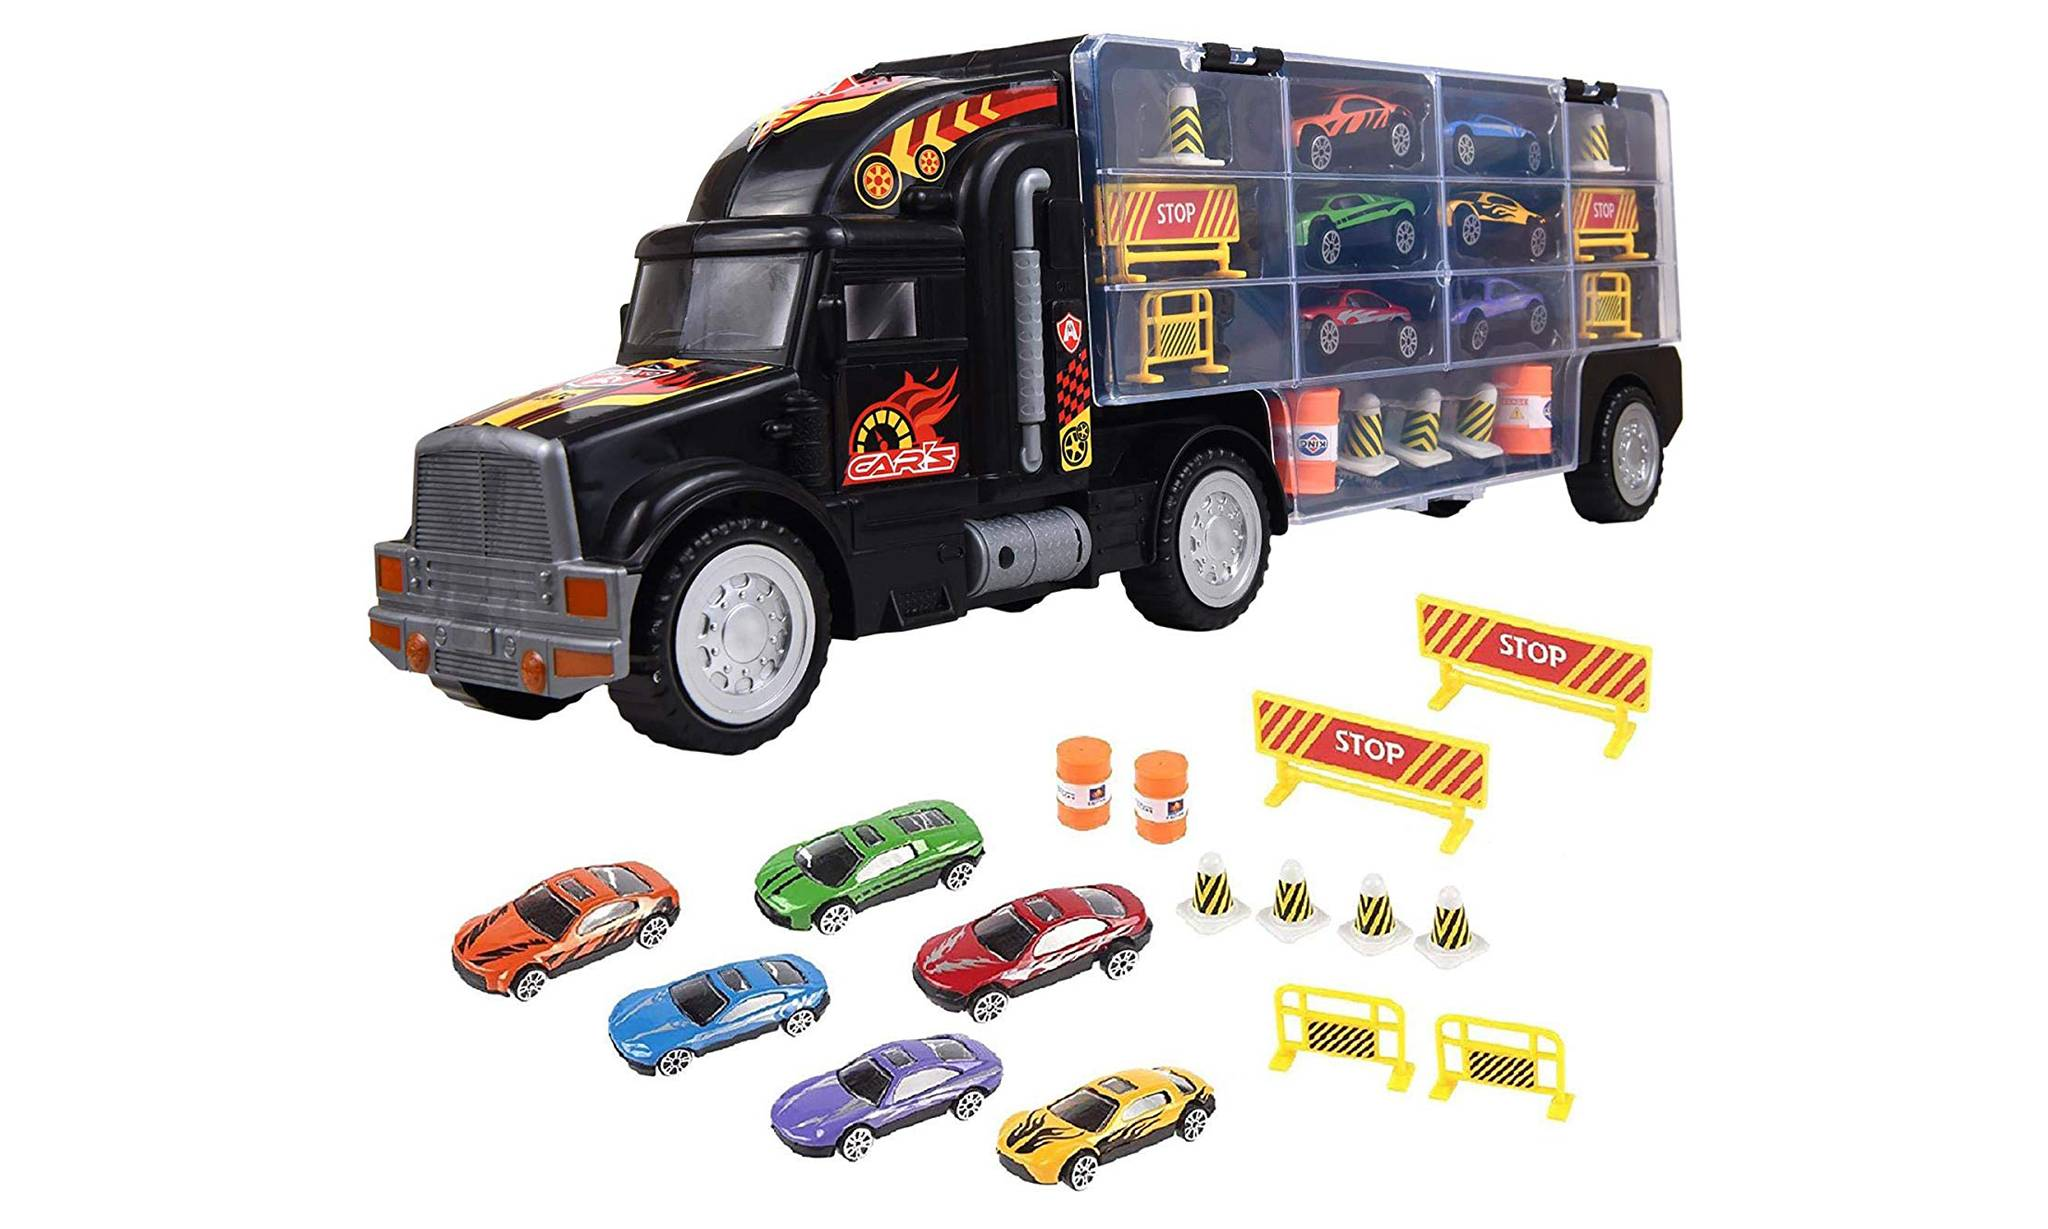 10.99 Soka Transport Truck Car Carrier with Cars and Accessories